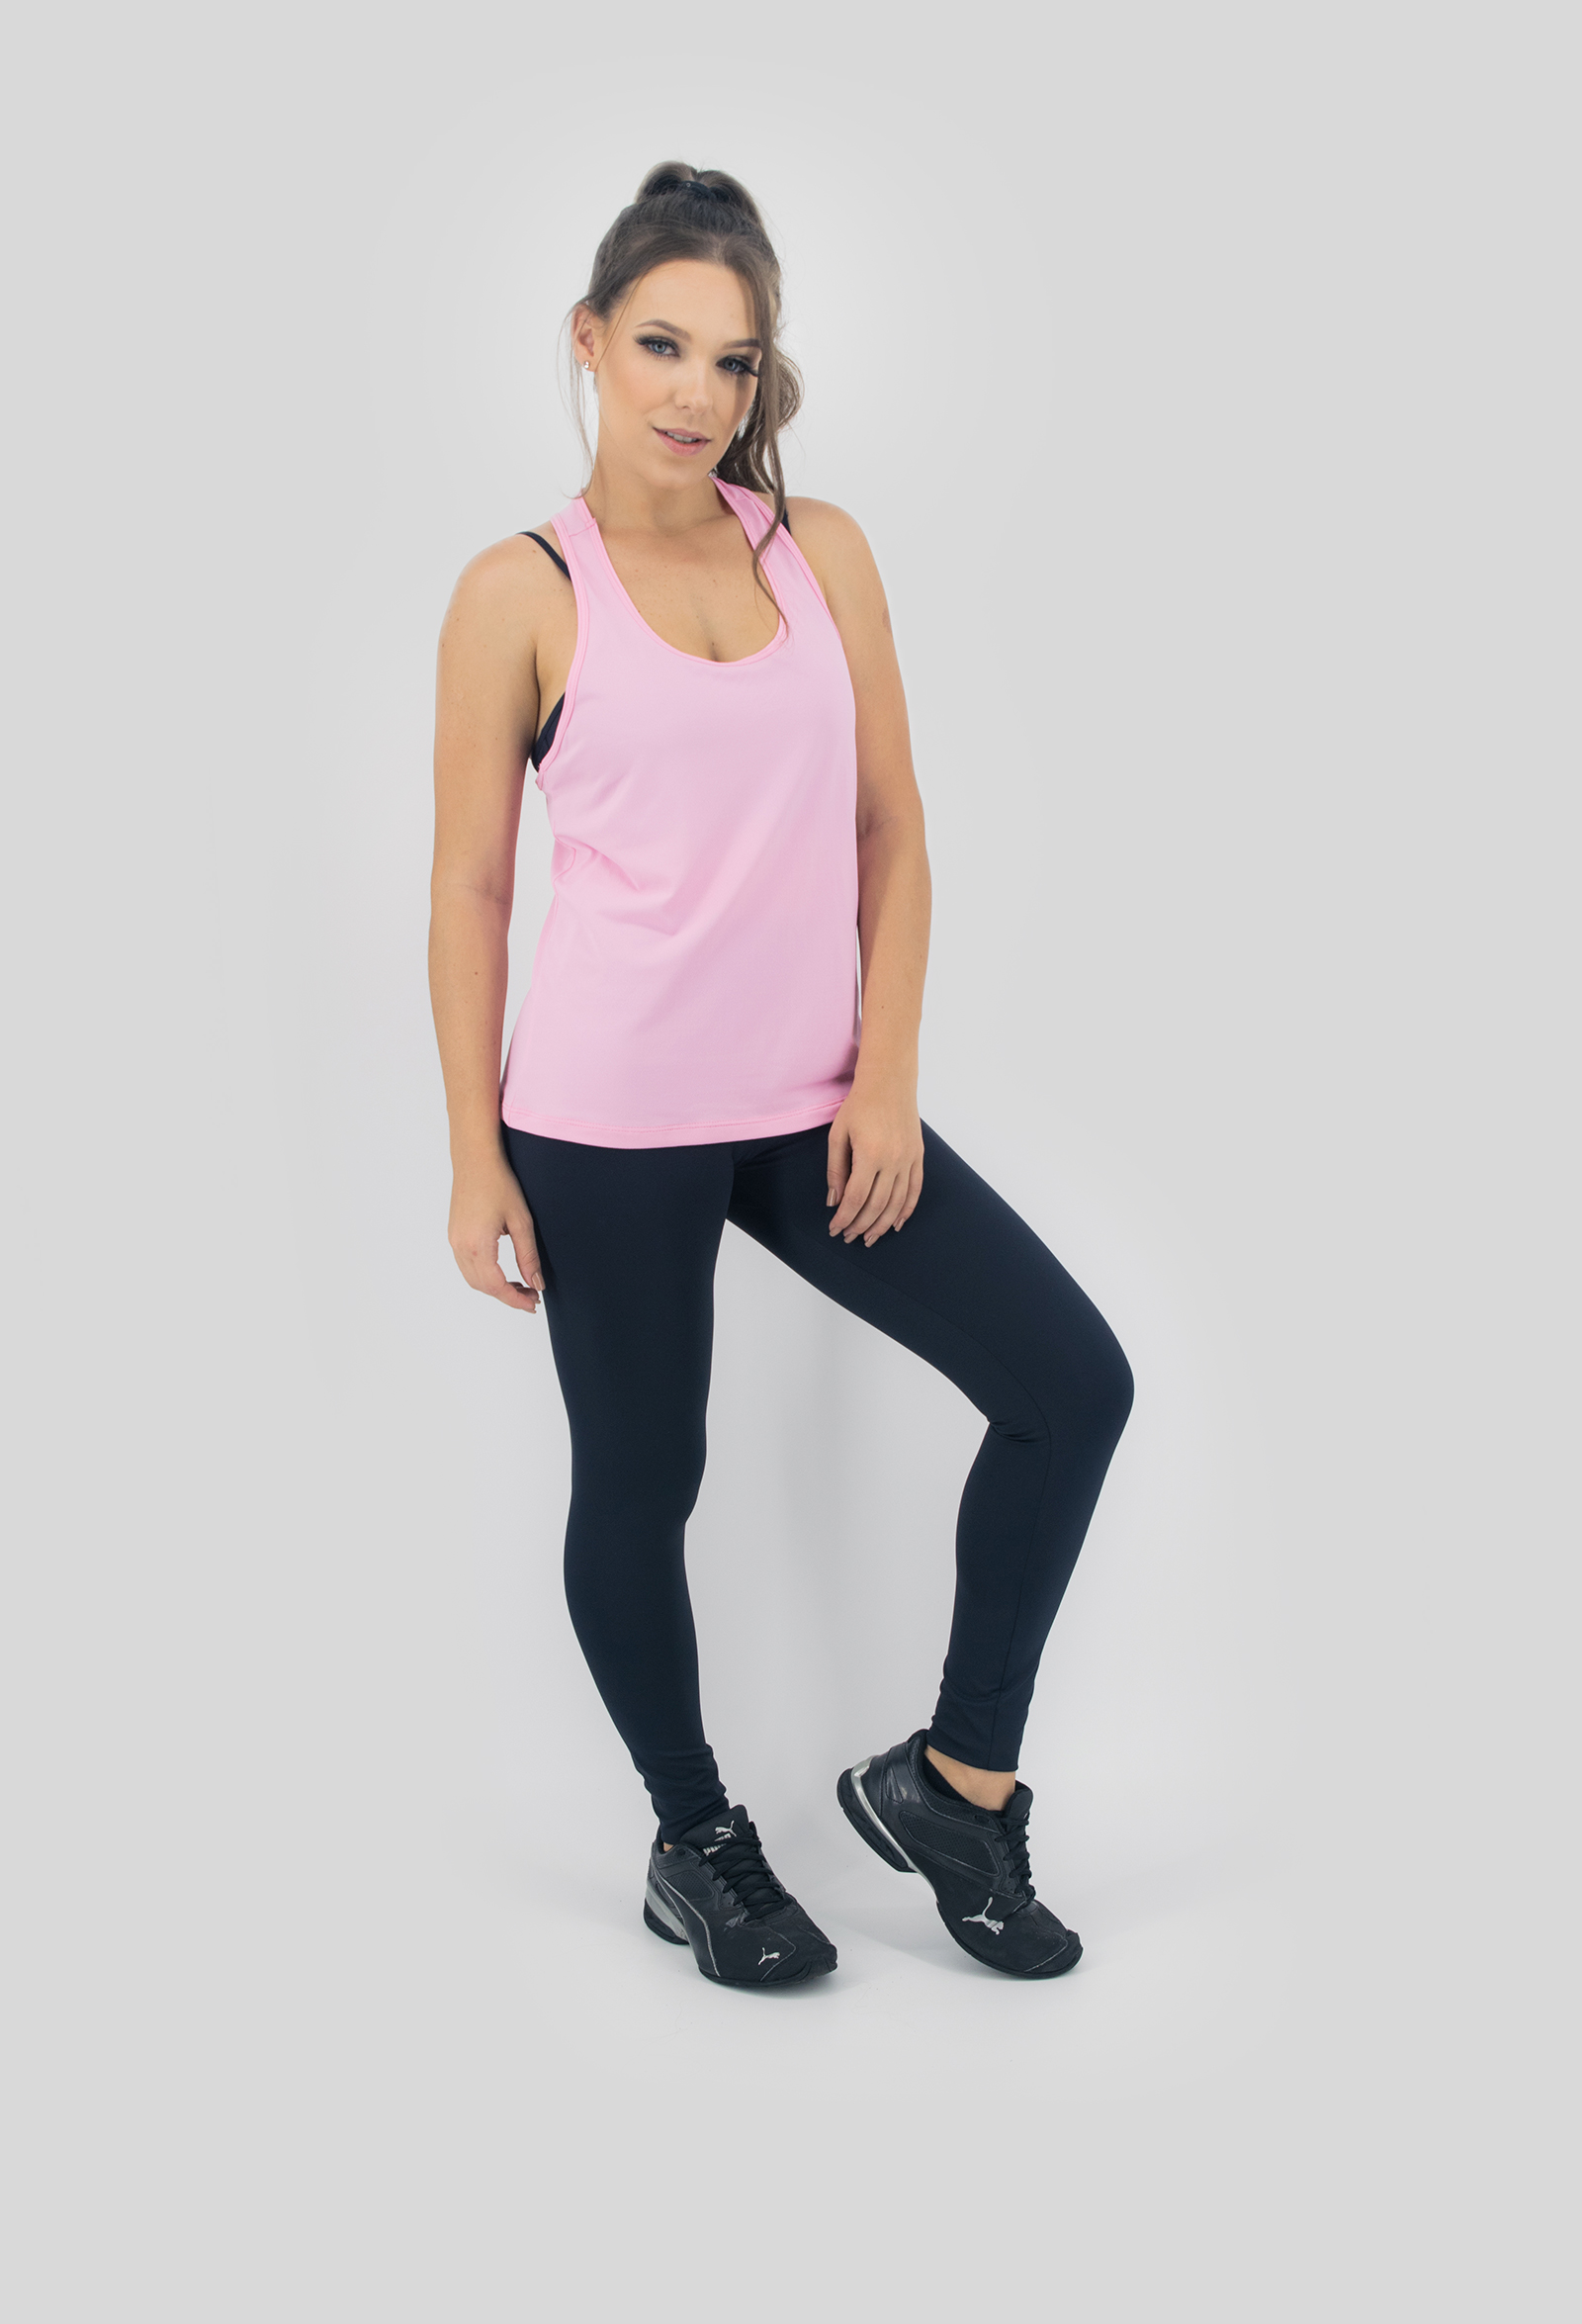 Regata NKT Rosa, Coleção Move Your Body - NKT Fitwear Moda Fitness